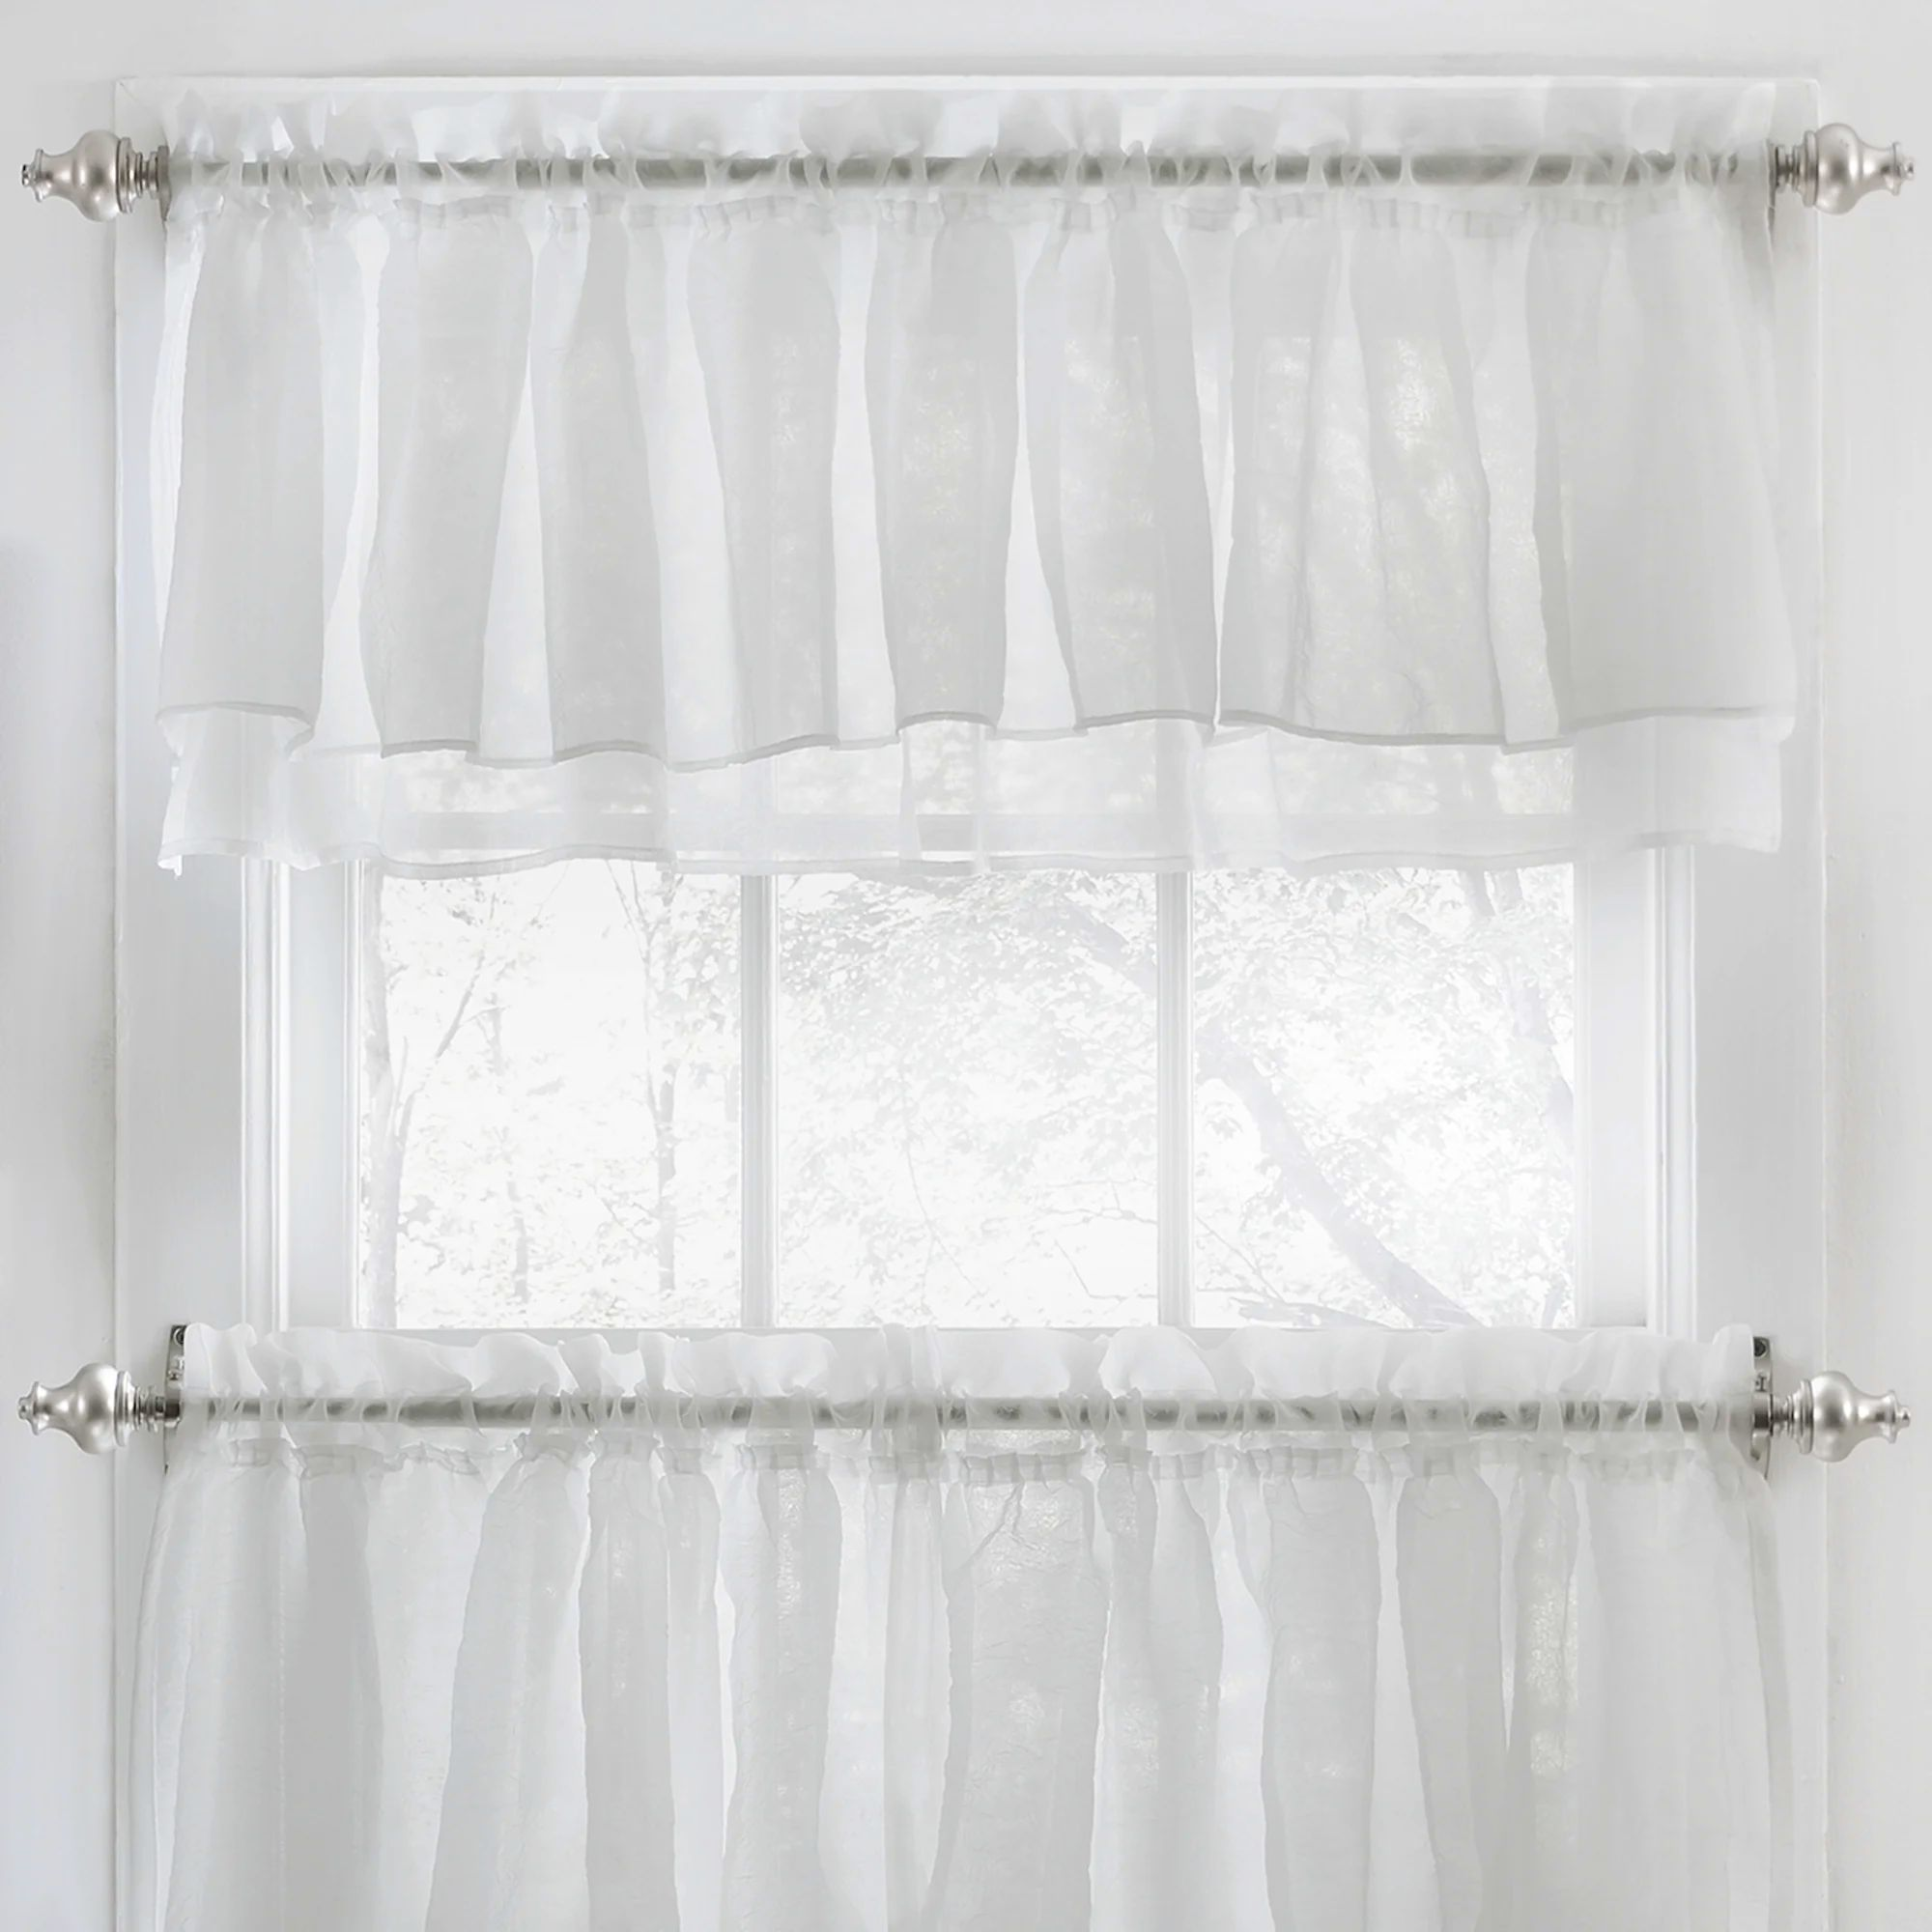 Black ruffle curtains - Download Wh White Ruffle Window Curtains